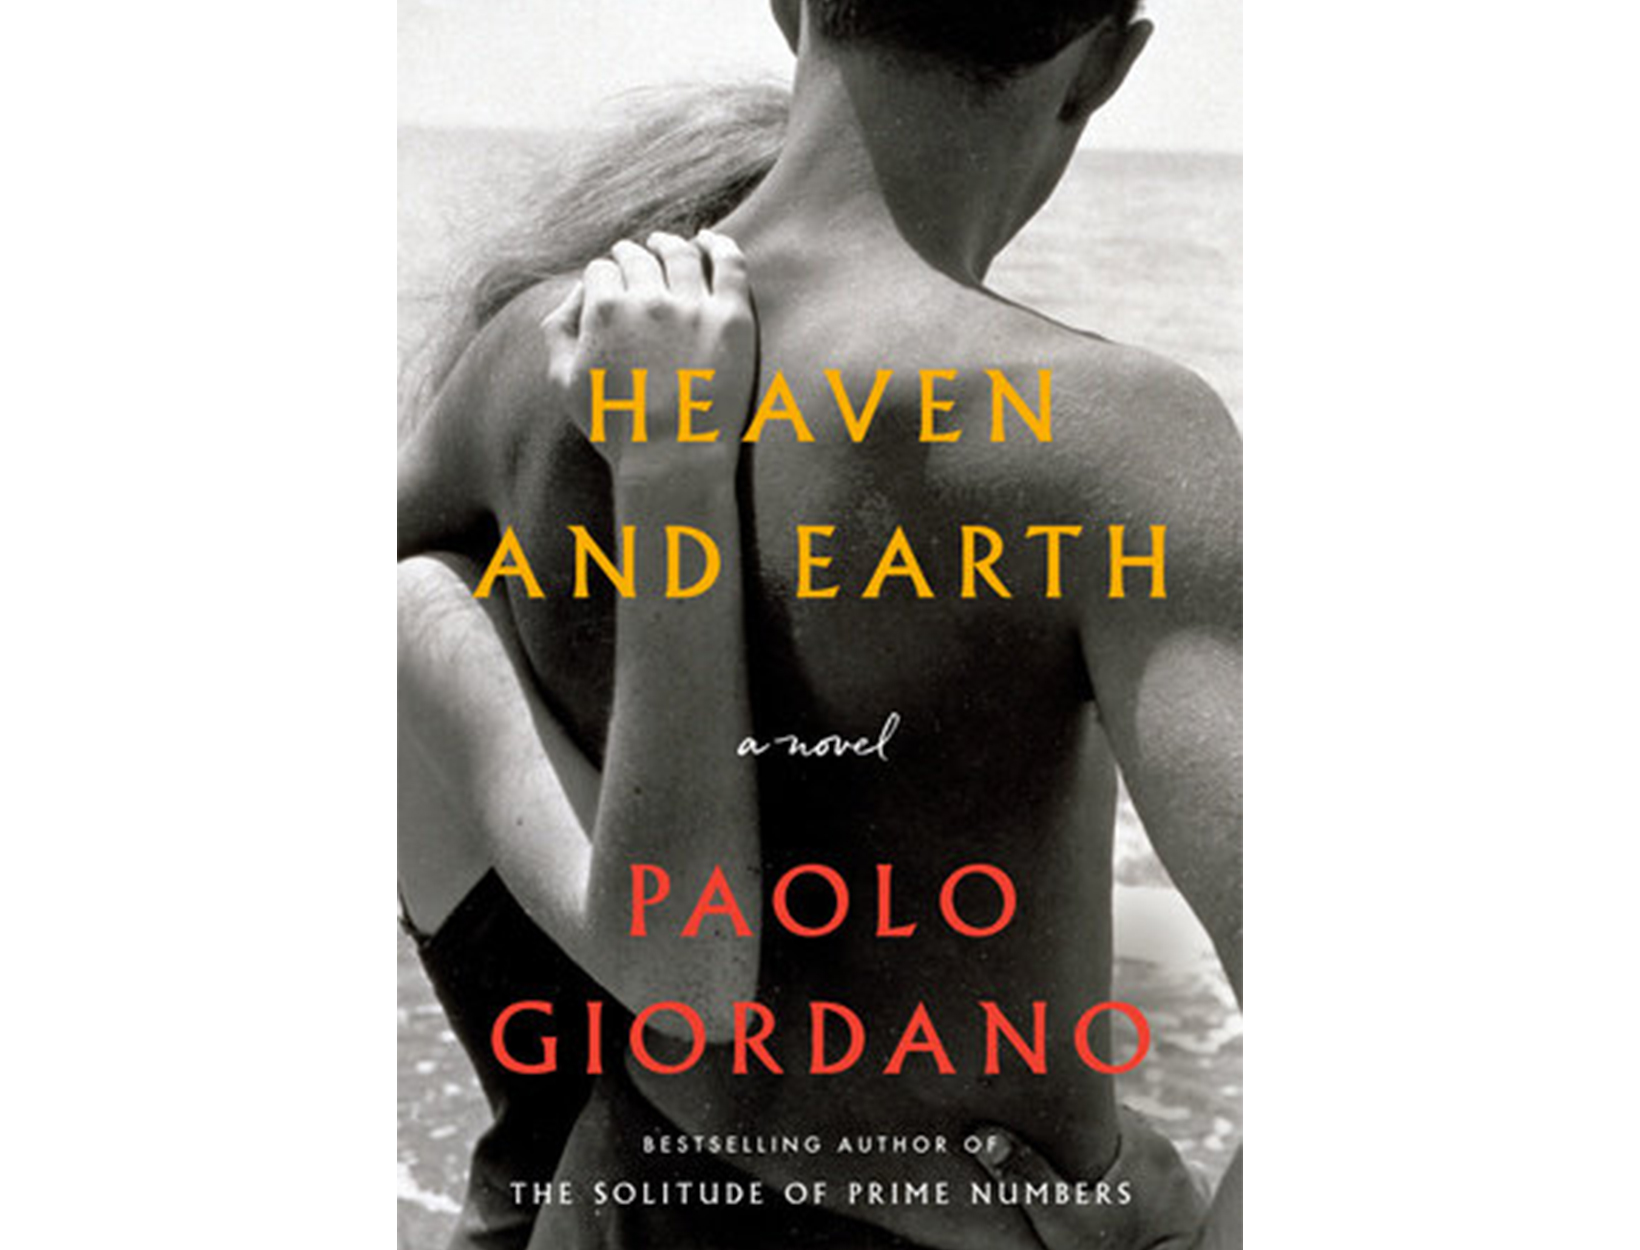 <em>Heaven and Earth</em> by Paolo Giordano